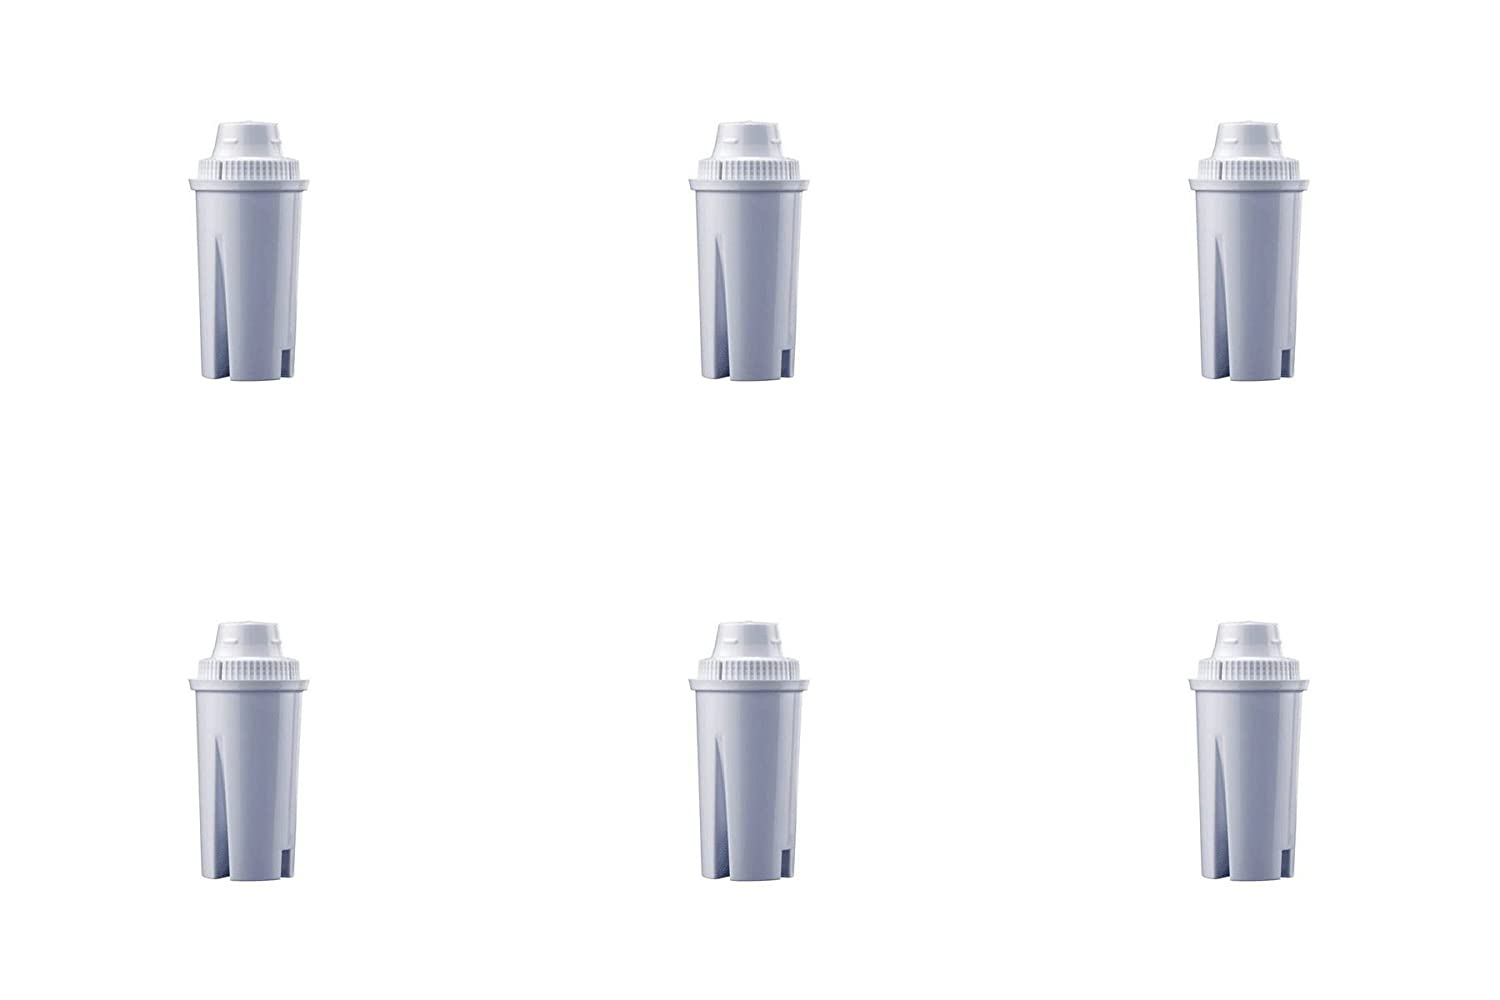 (6 PACK) - Brita Classic Cartridge | inleSingle | 6 PACK - SUPER SAVER - SAVE MONEY